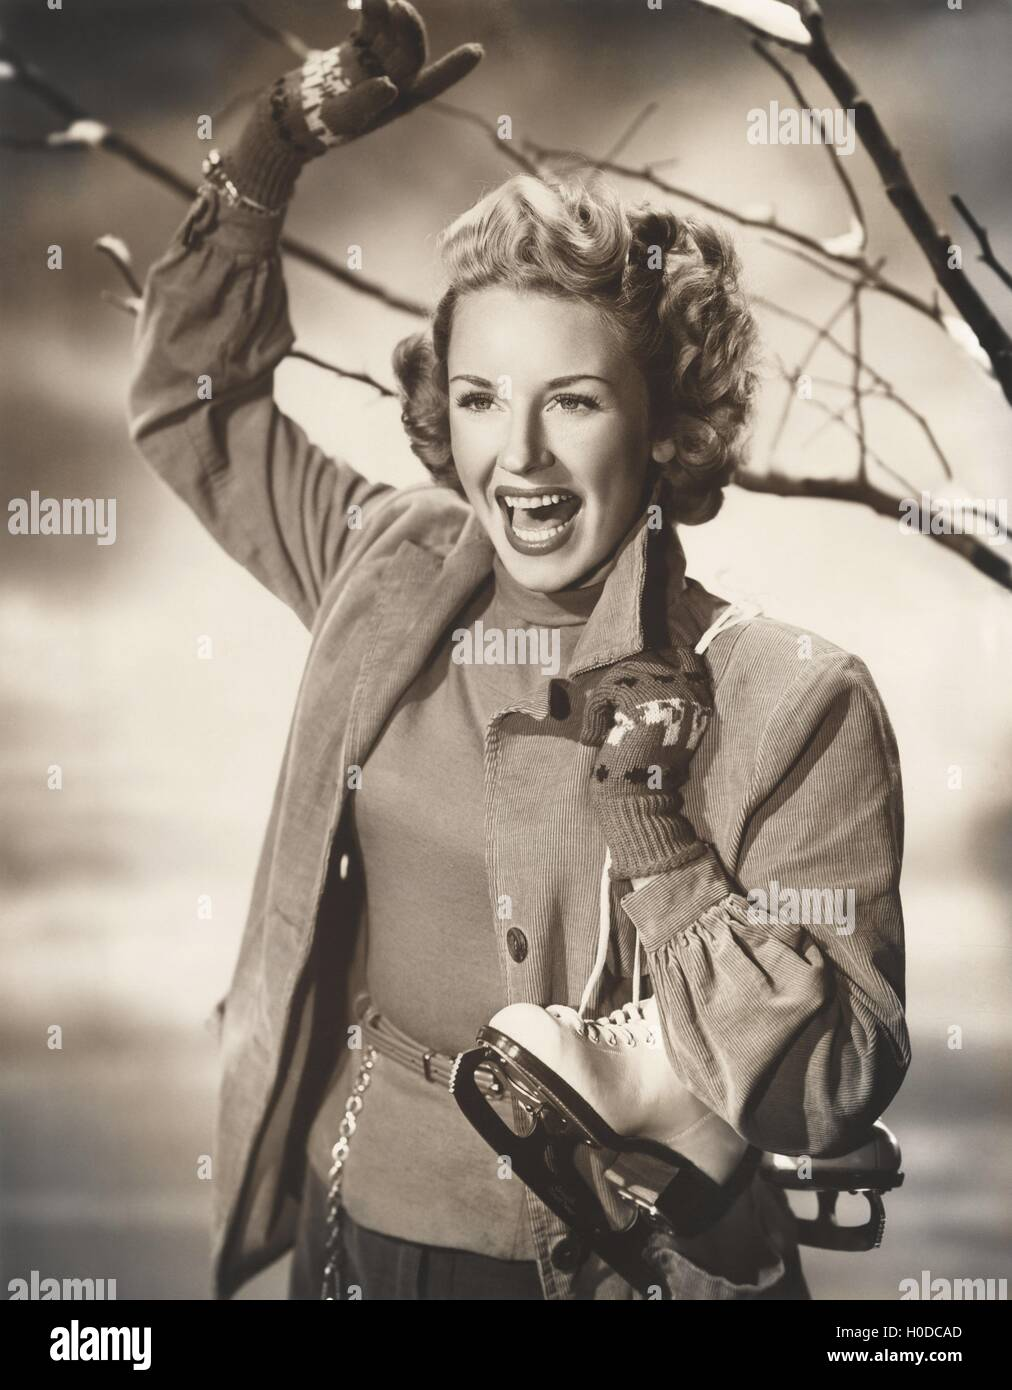 Happy woman carrying ice skates - Stock Image